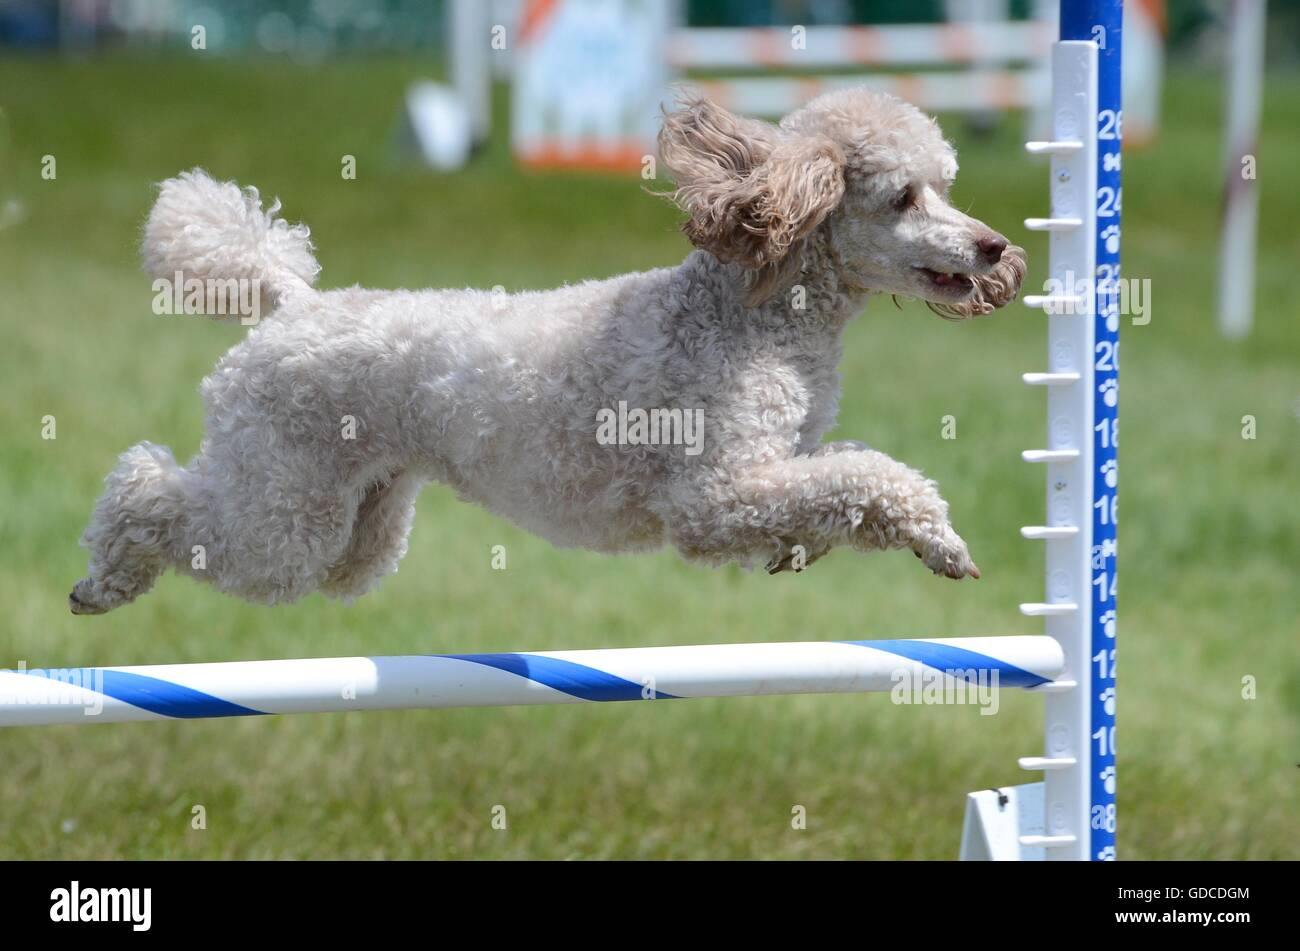 Miniature Poodle Leaping Over a Jump at a Dog Agility Trial - Stock Image